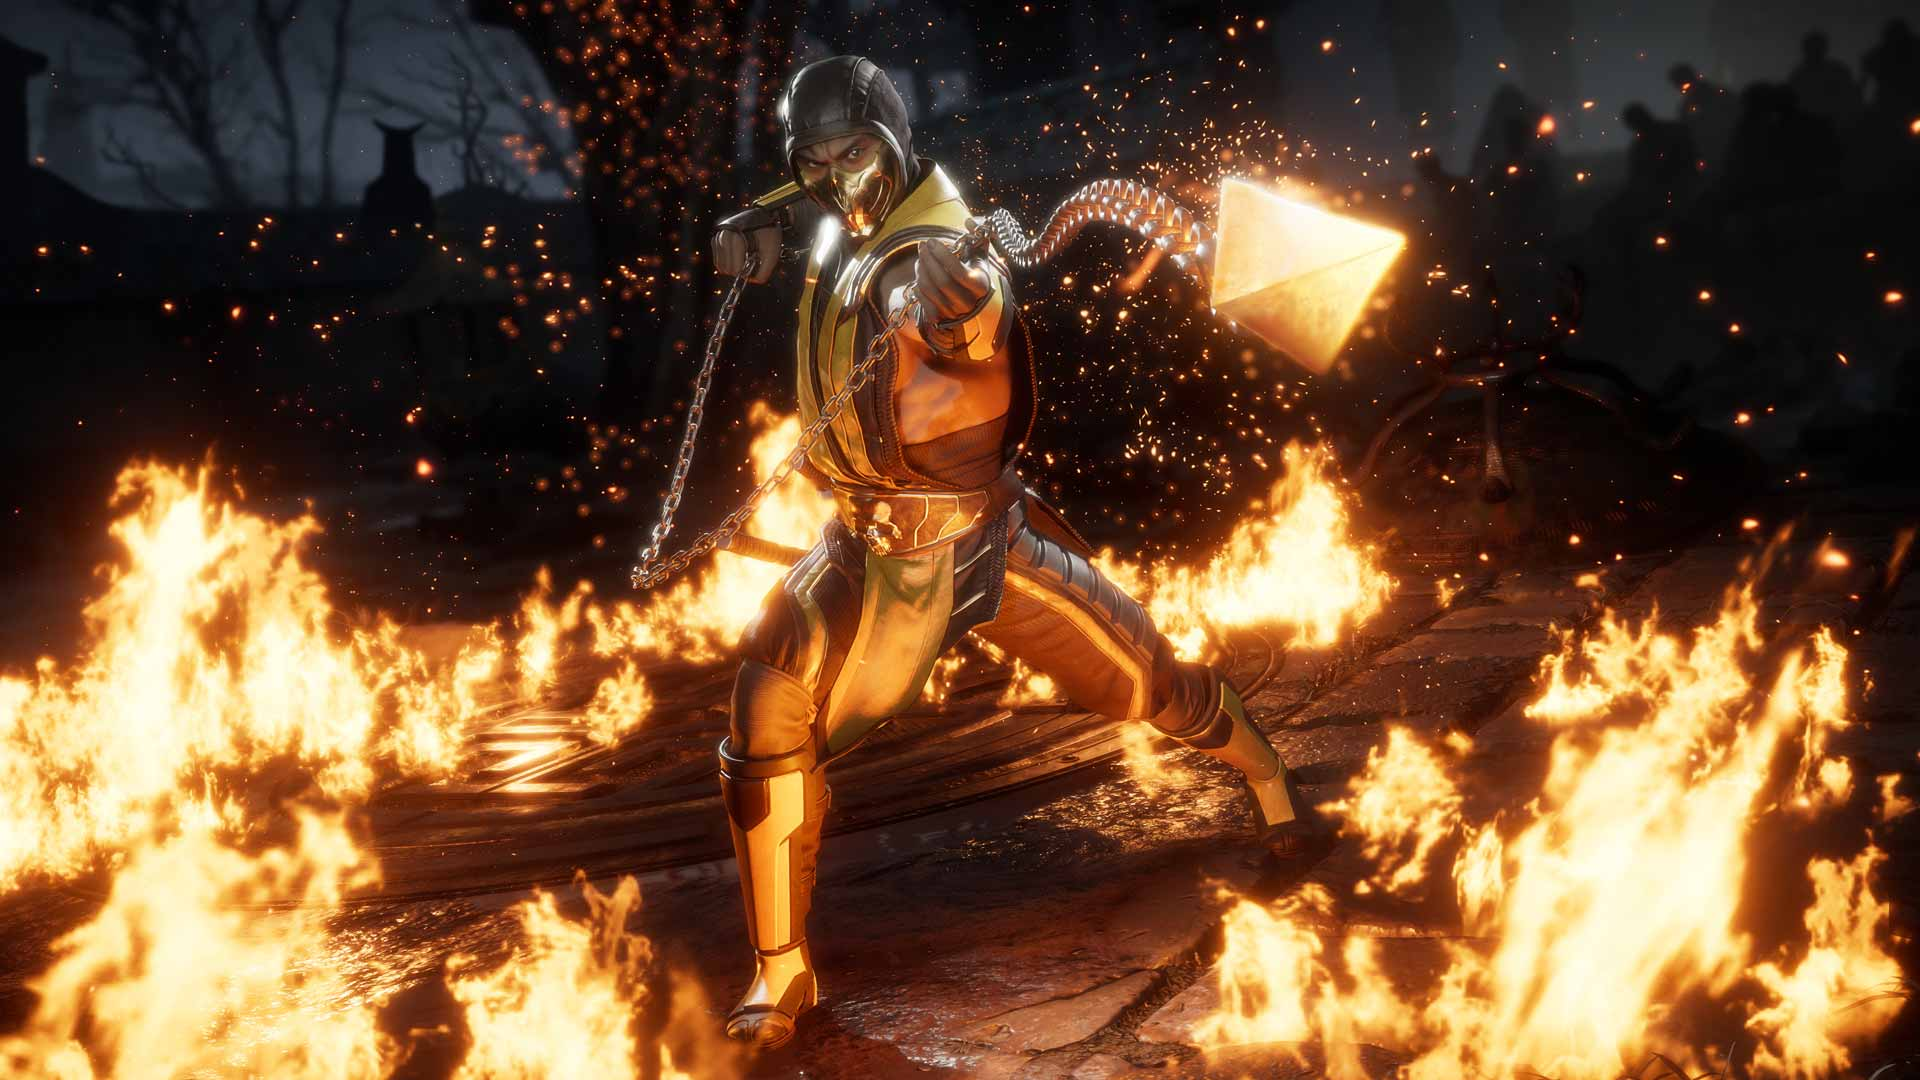 Mortal Kombat 11 Xbox Series X Optimized